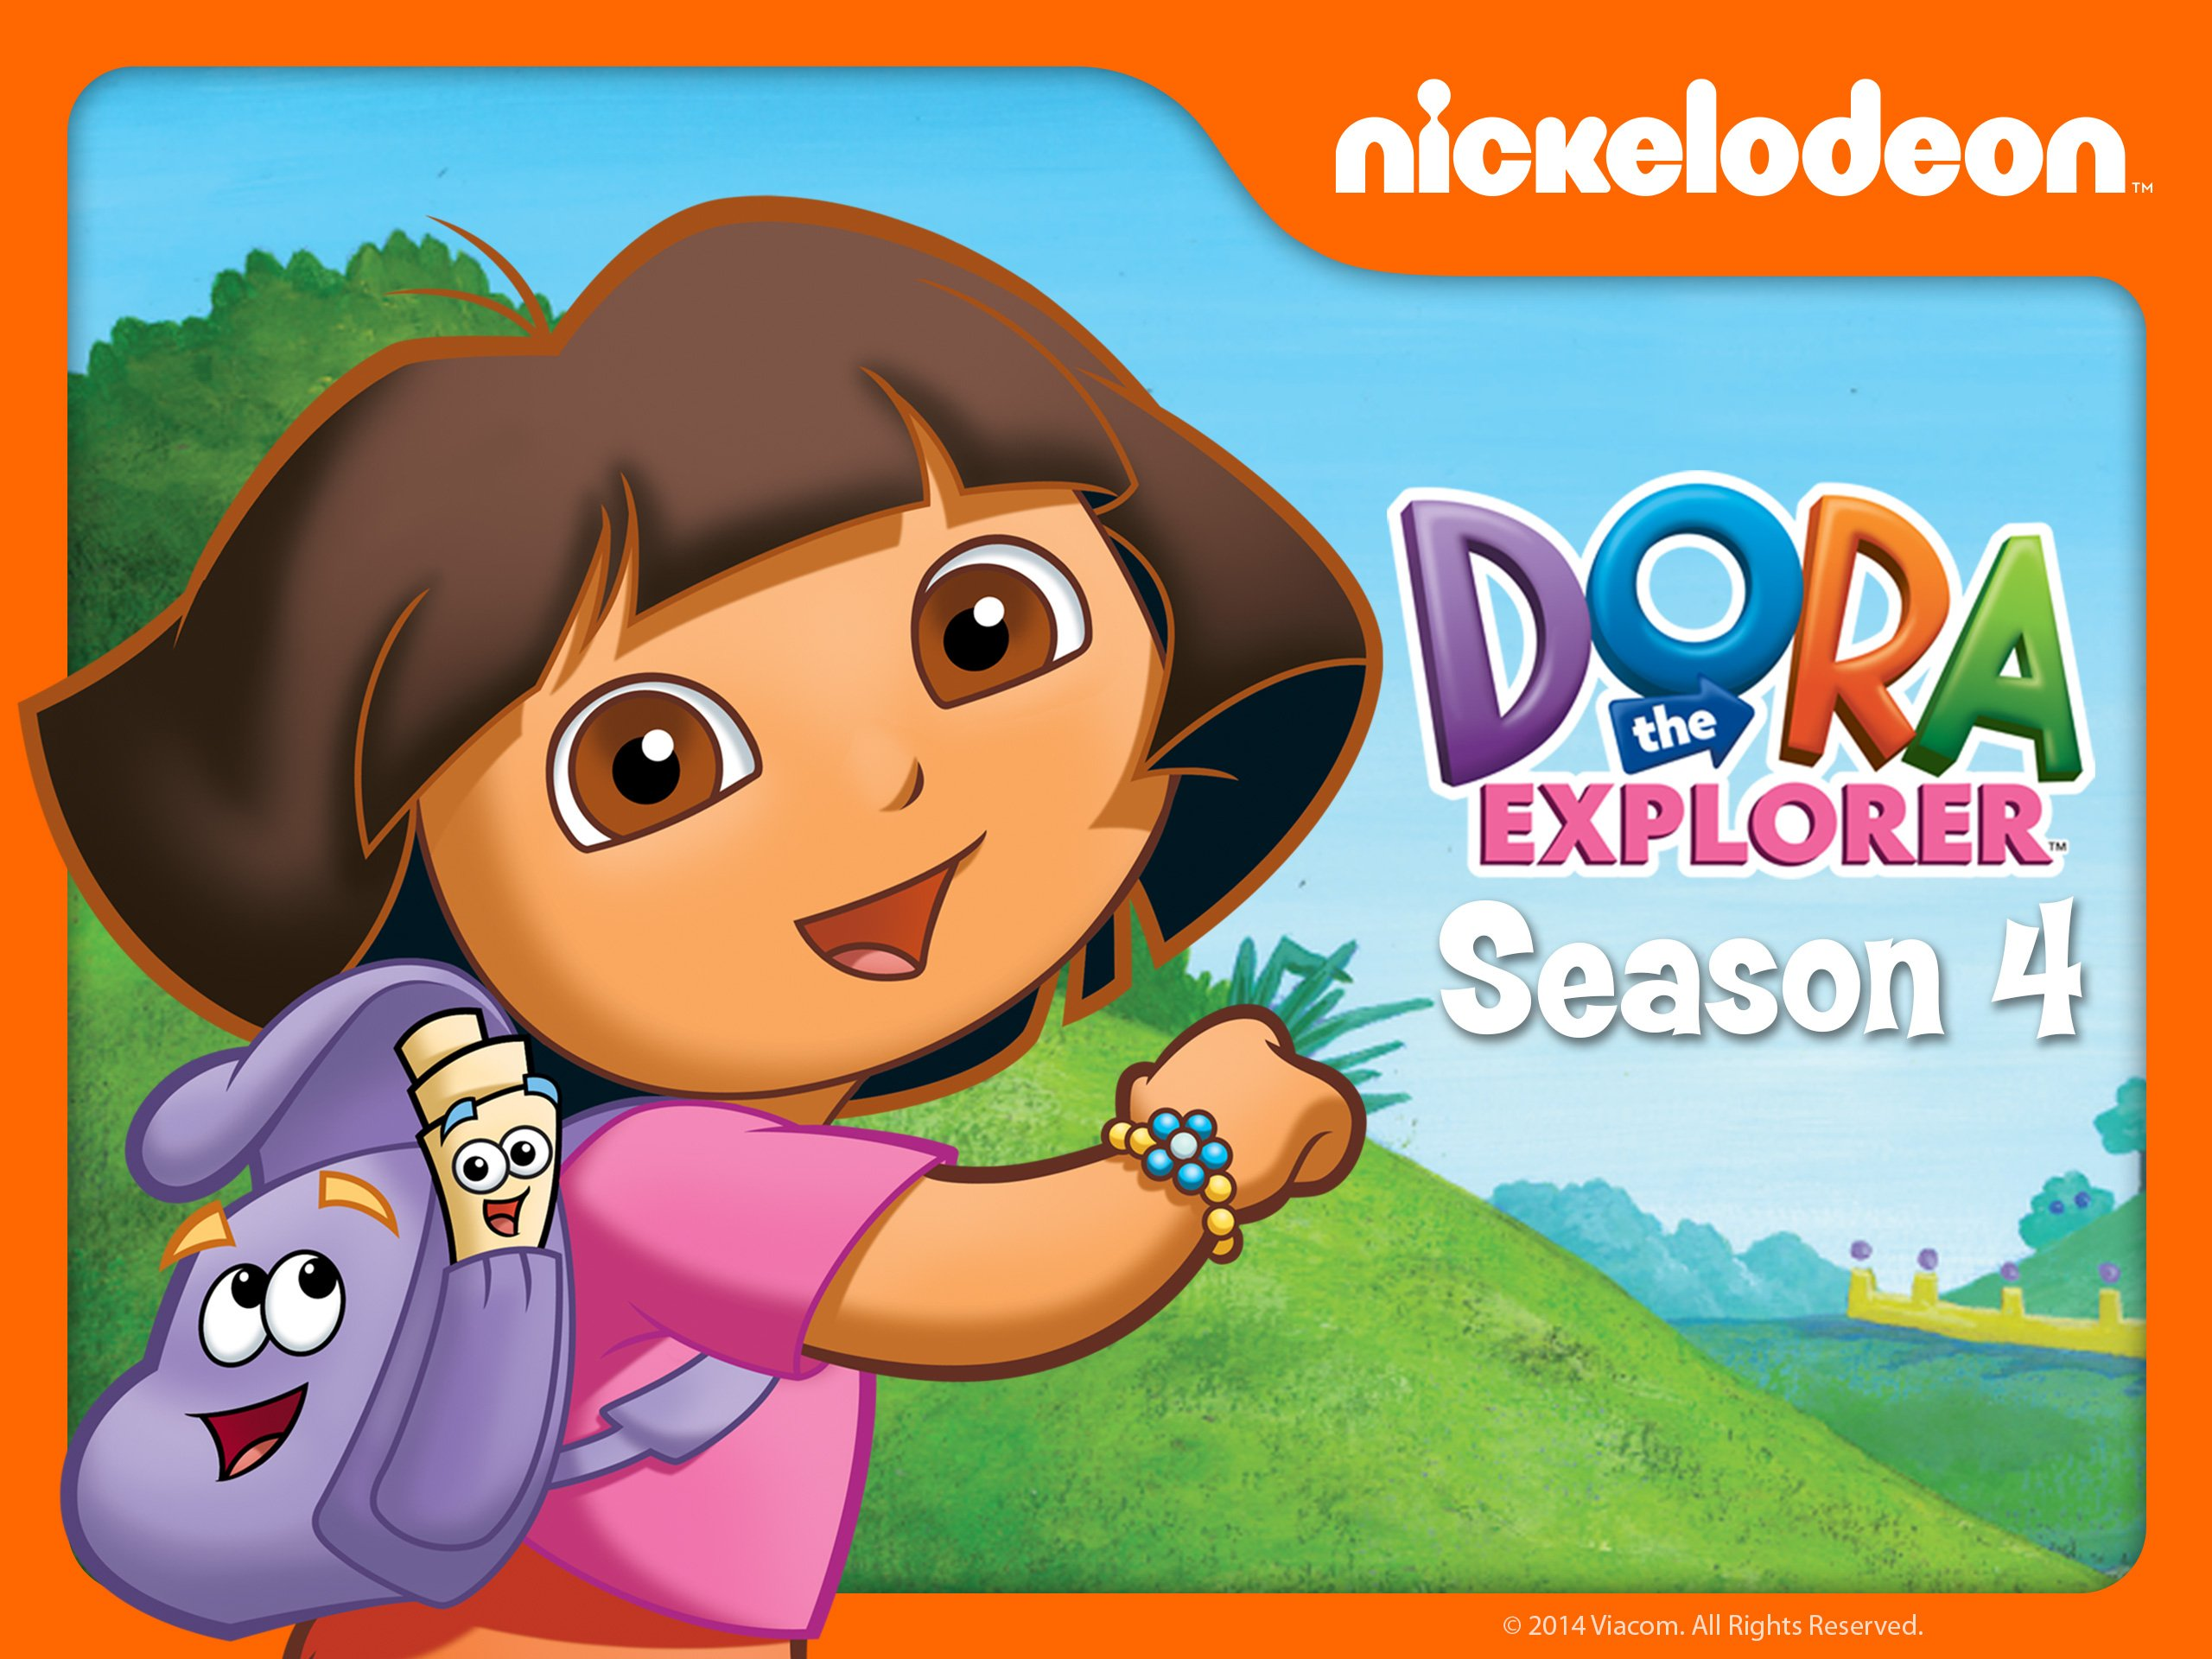 Amazoncom Dora the Explorer Season 4 Amazon Digital Services LLC